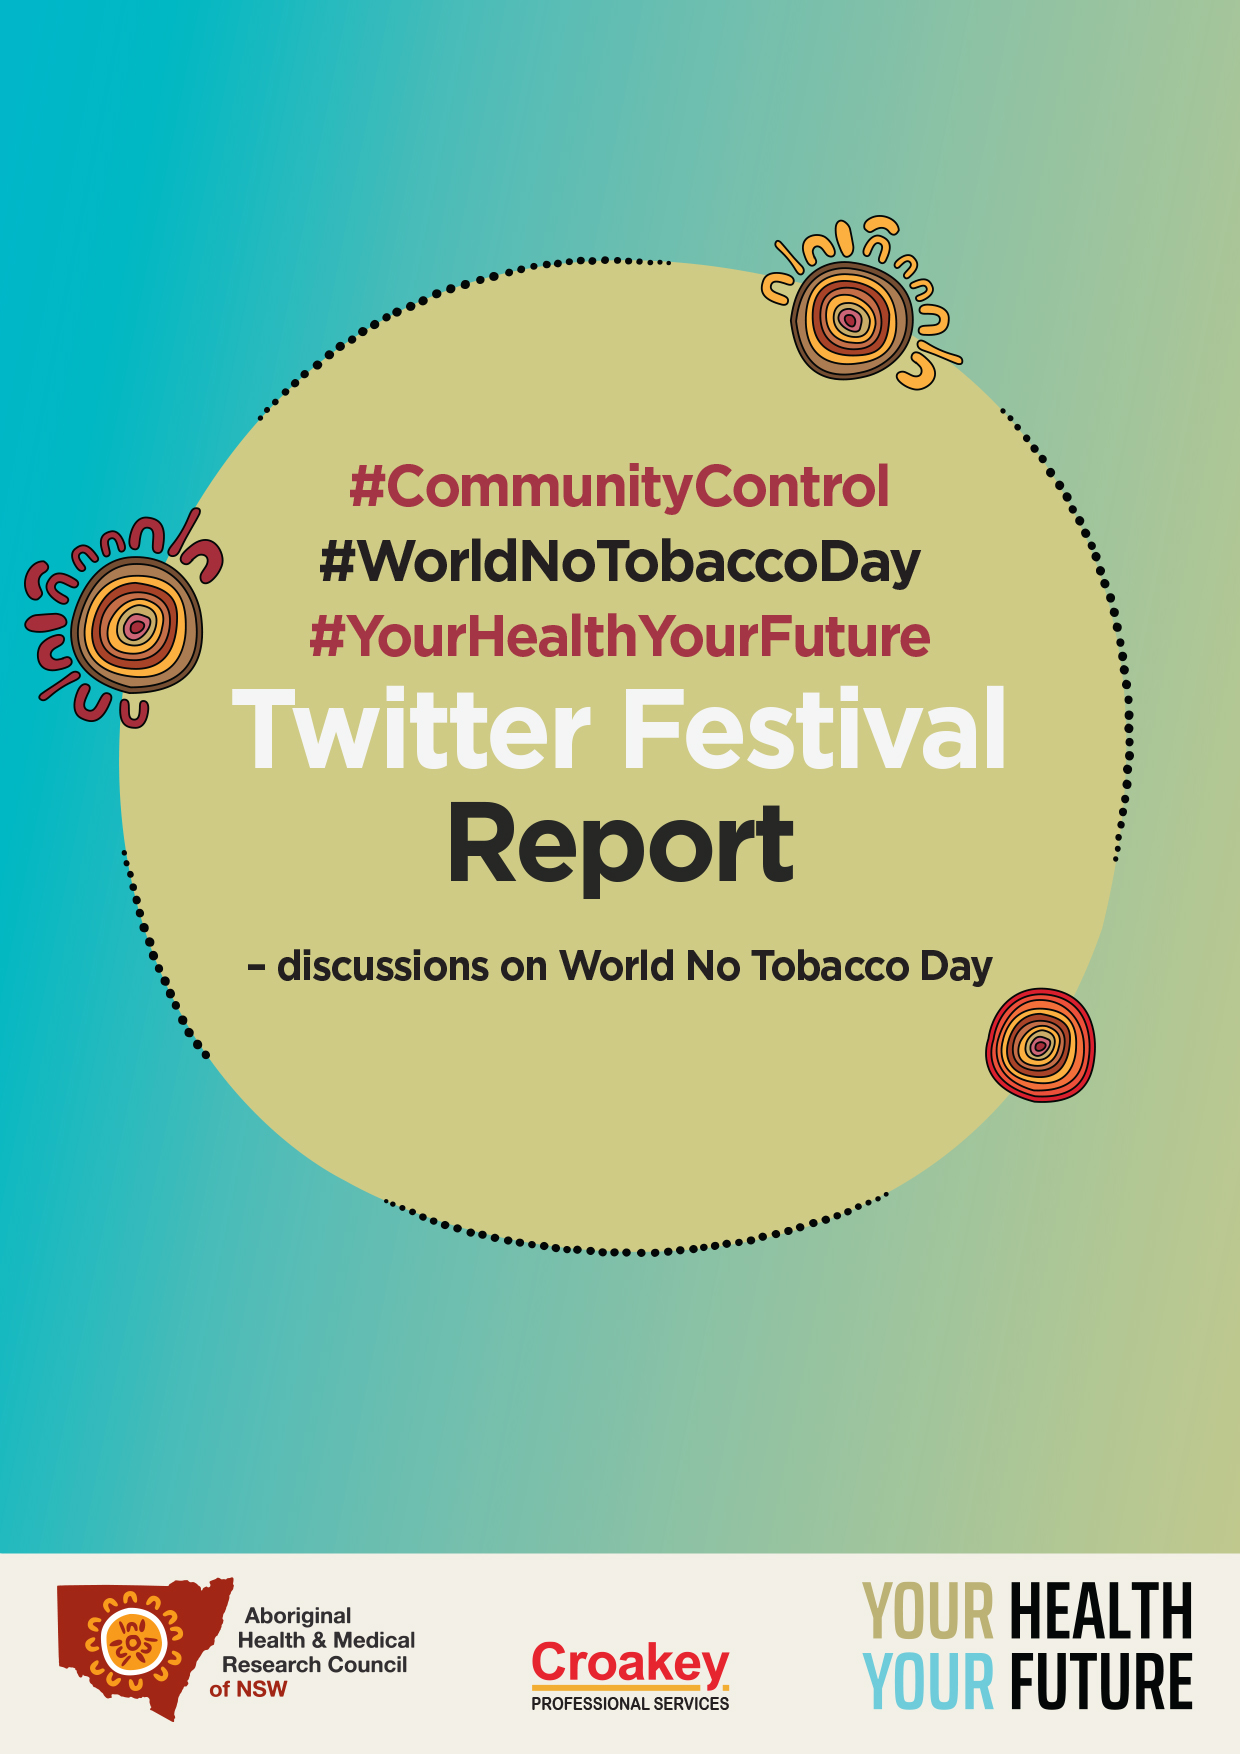 Read all about it! Download the #CommunityControl Twitter Festival report